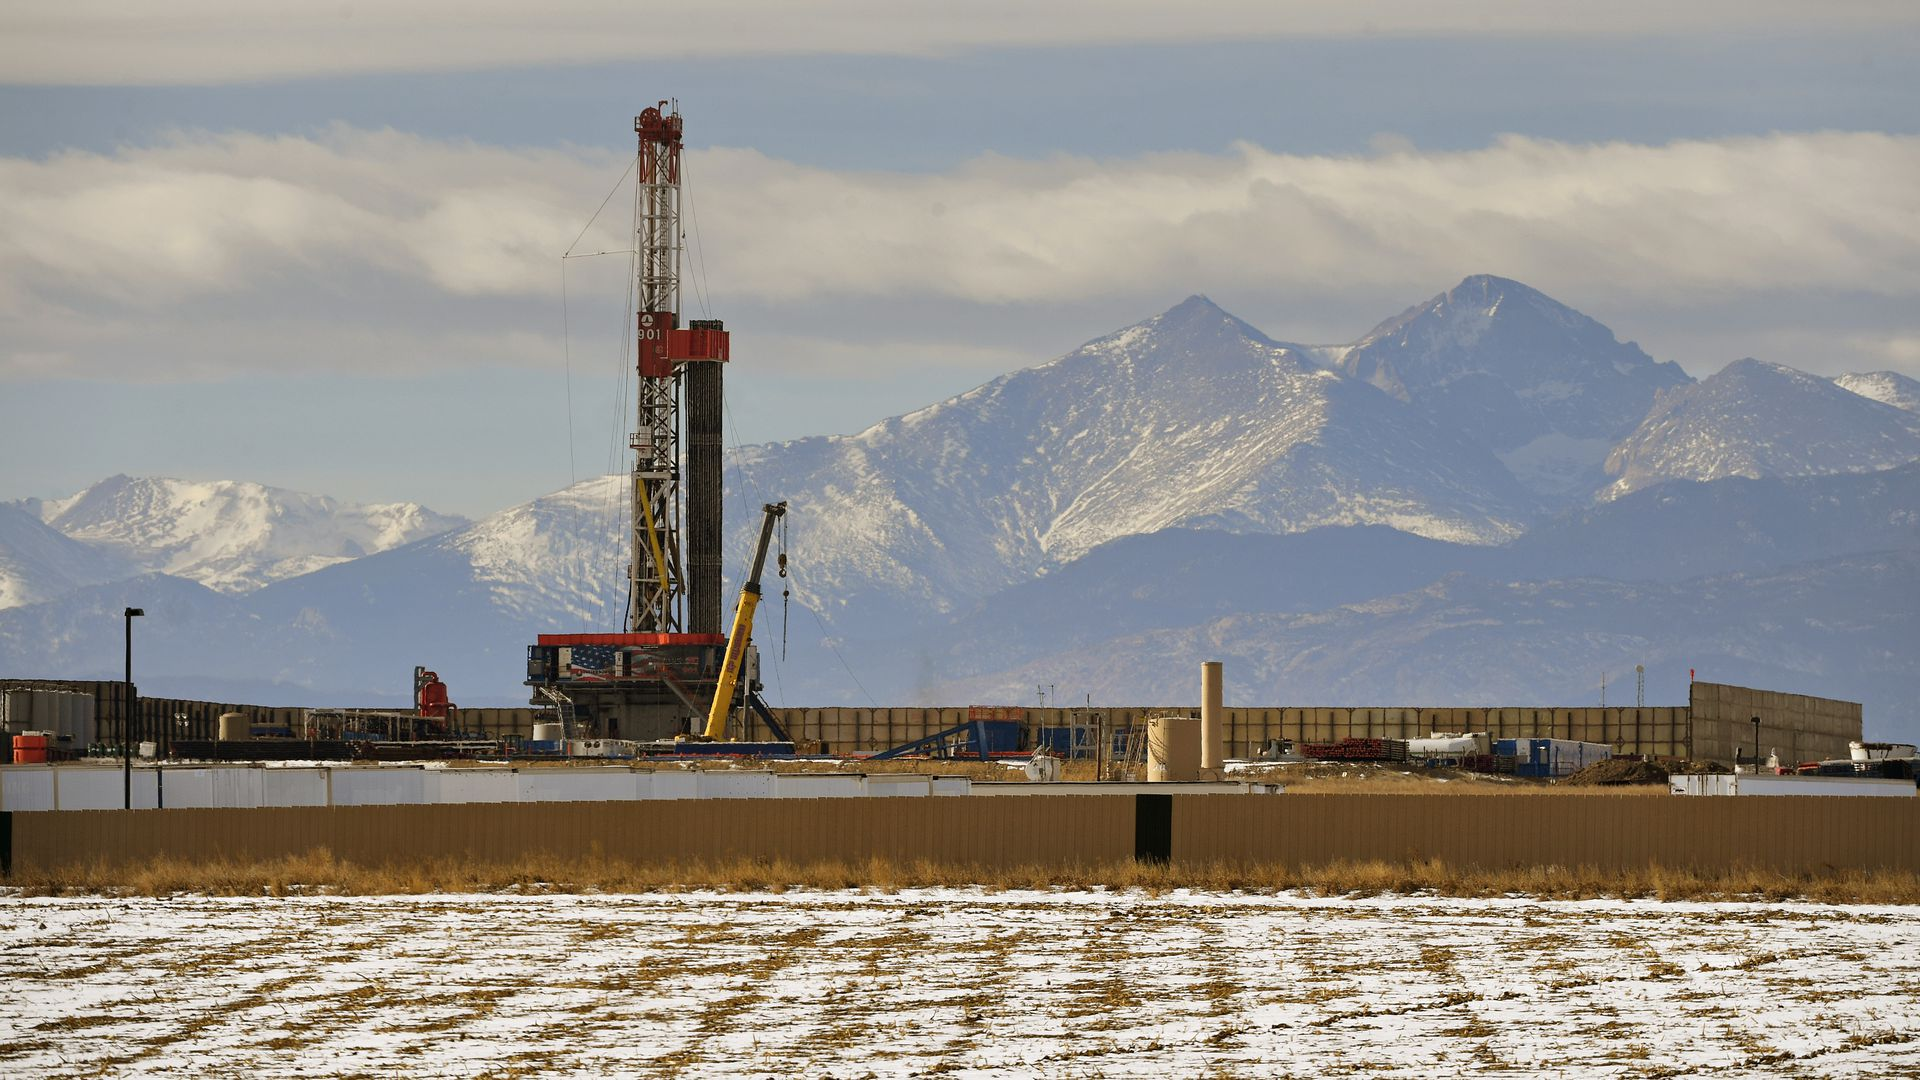 Colorado gears up for big fracking fight this election - Axios